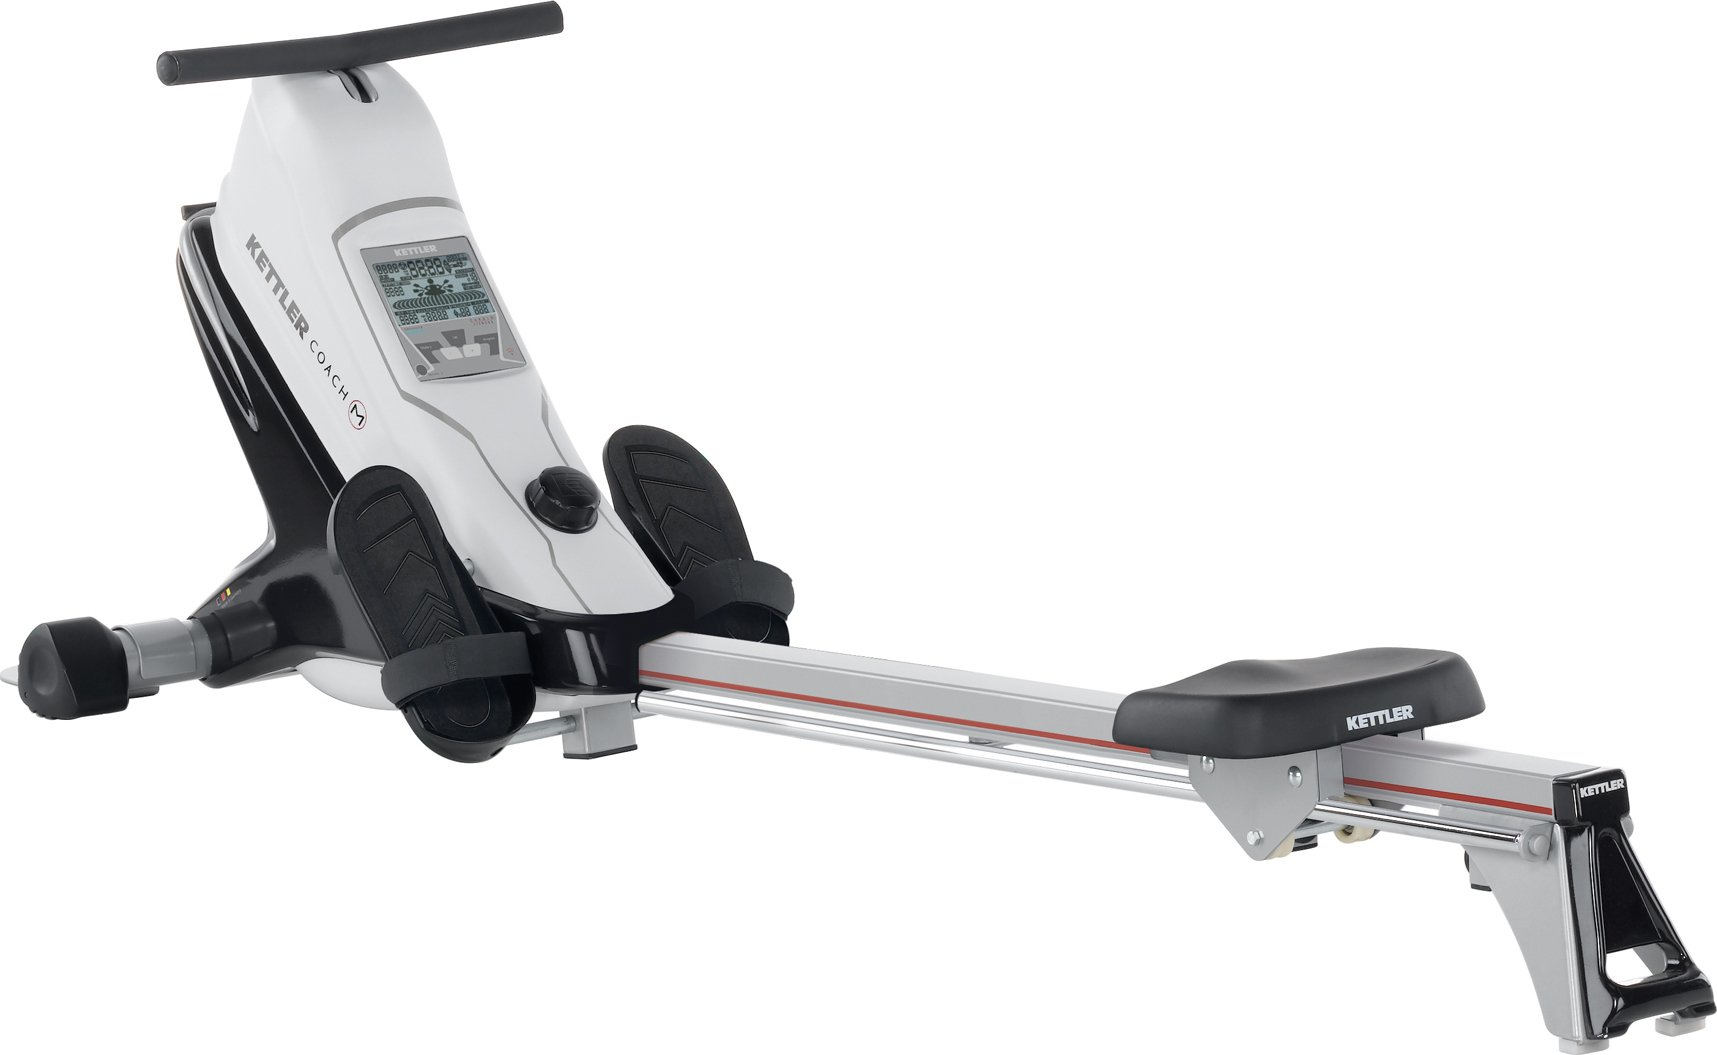 Kettler Home Exercise/Fitness Equipment: Coach M Rowing Machine by Kettler